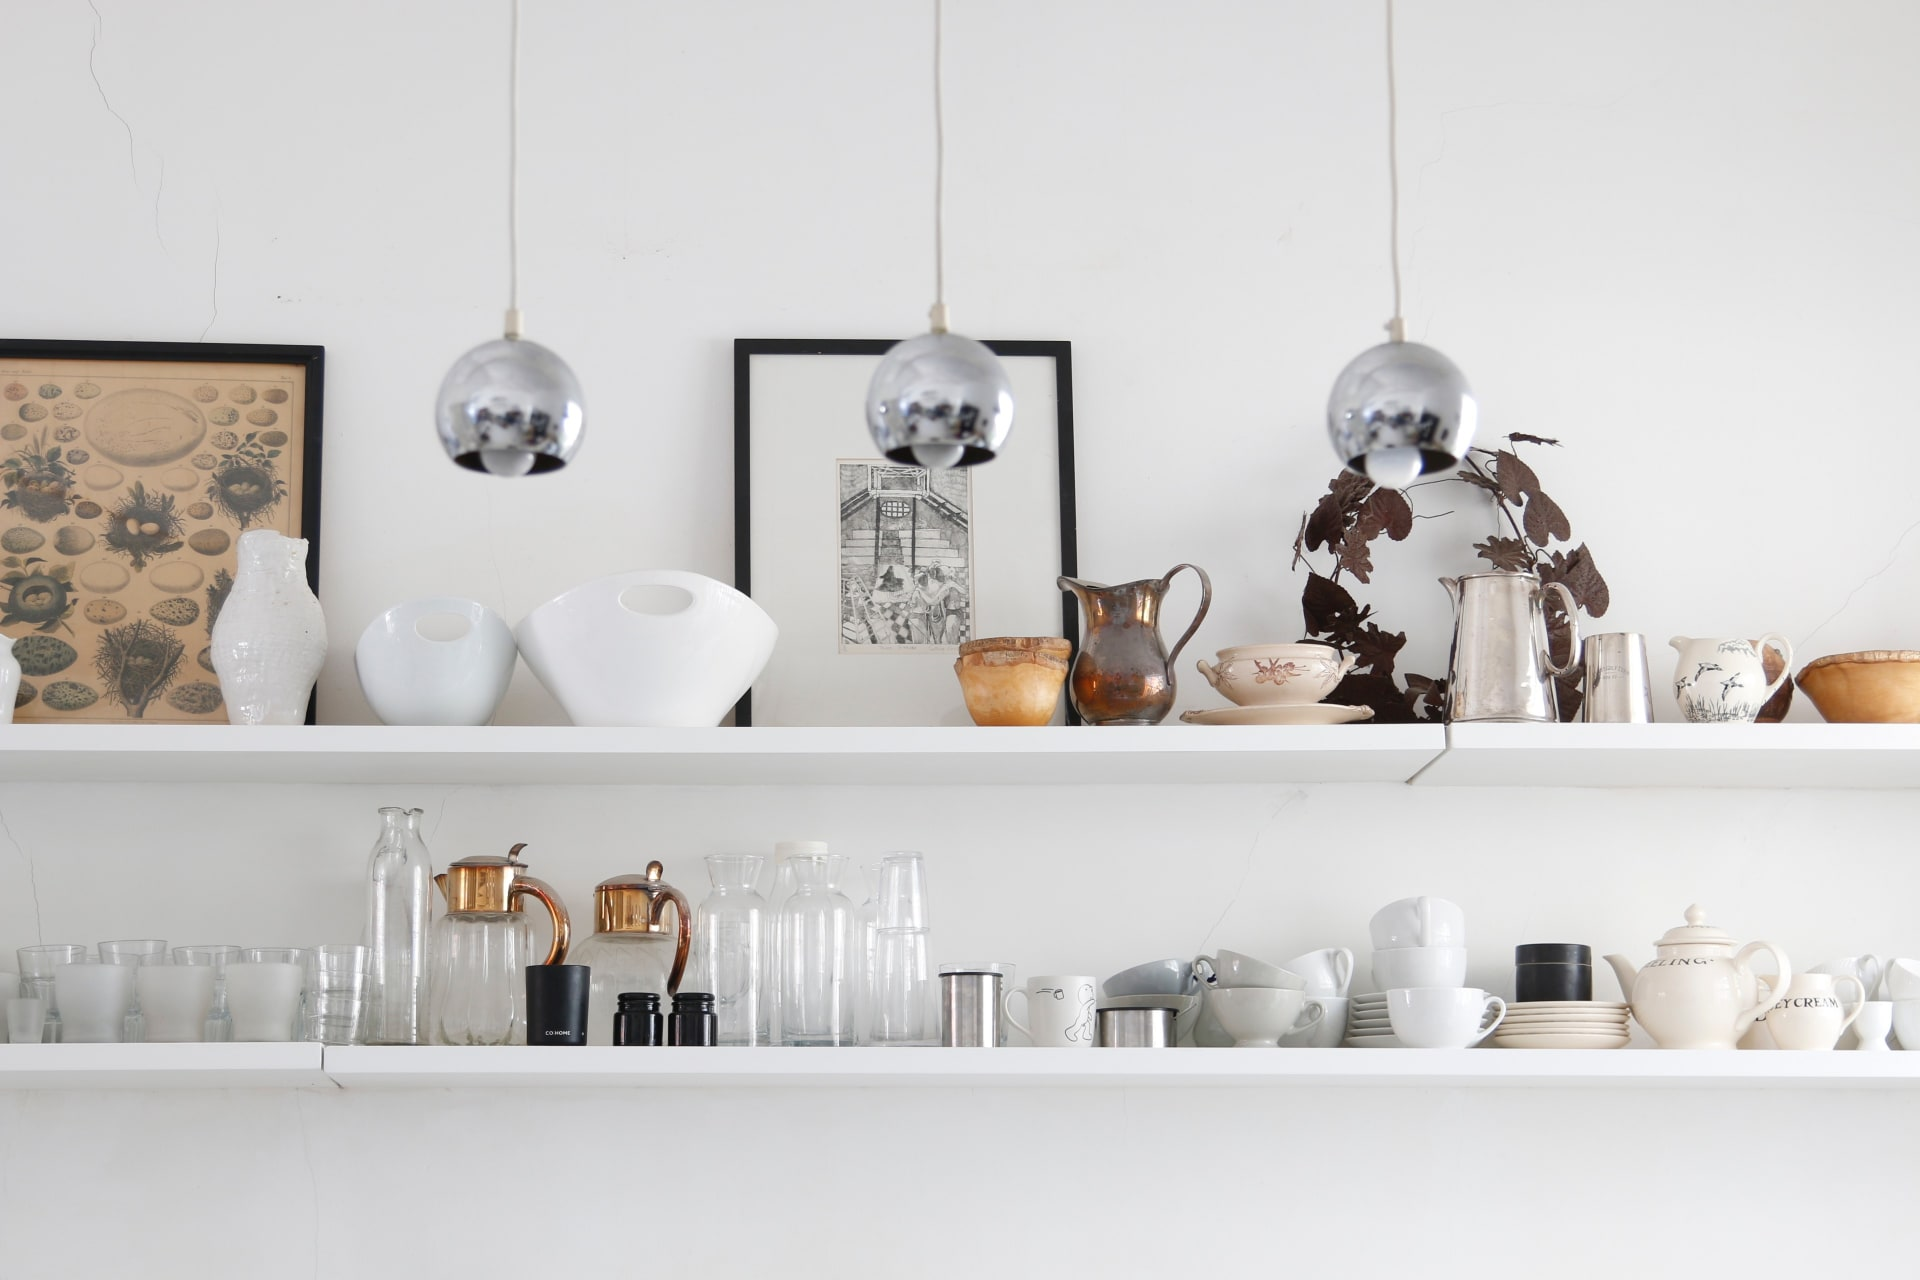 The open kitchen shelves are practical and are used to store glassware, crockery and some itemsthat the owner has collected on her travels.